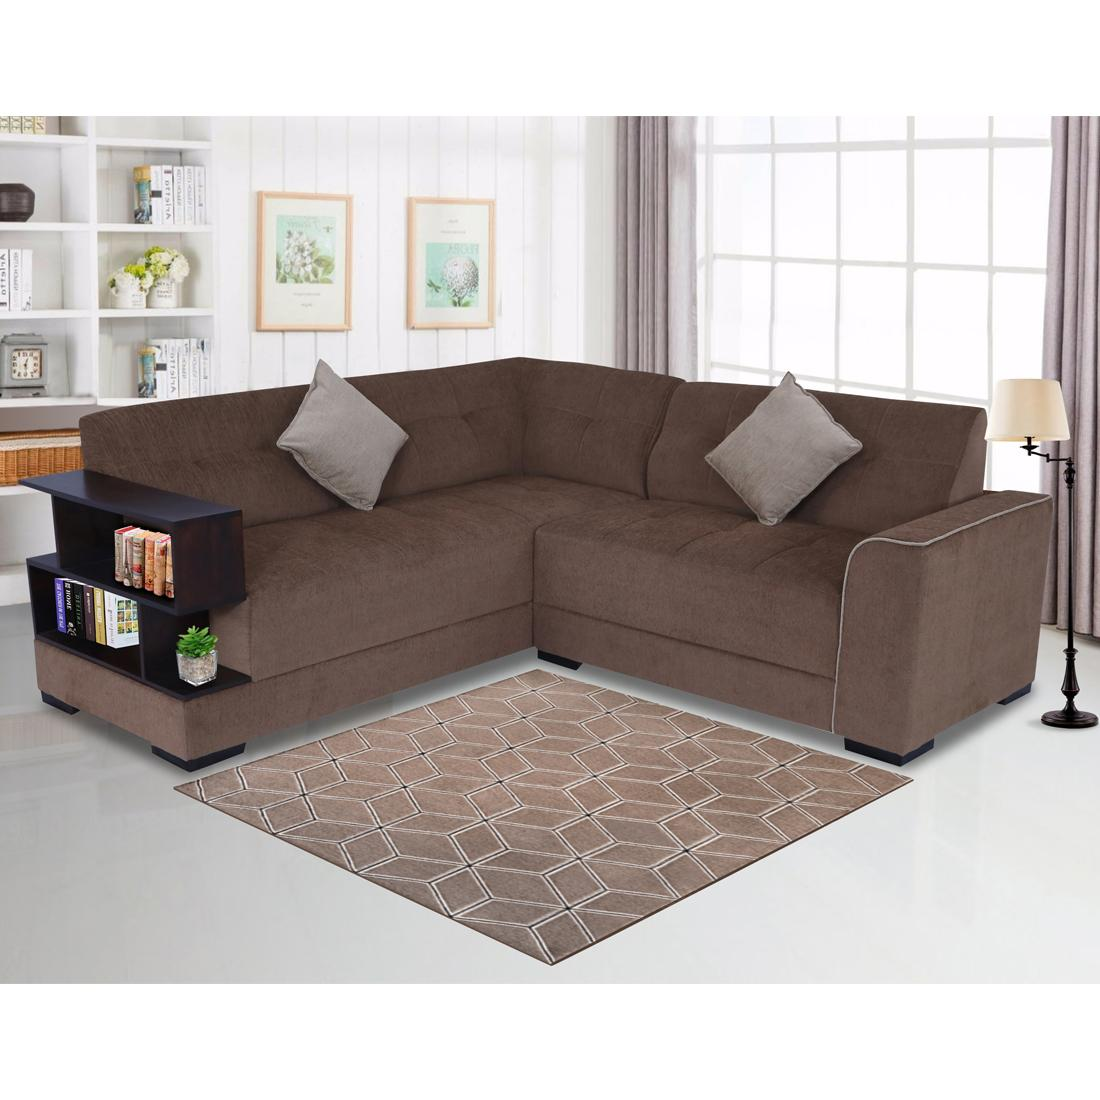 Picture of: Buy Aleena Fabric 5 Seater L Shape Sofa Left Brown Online Evok